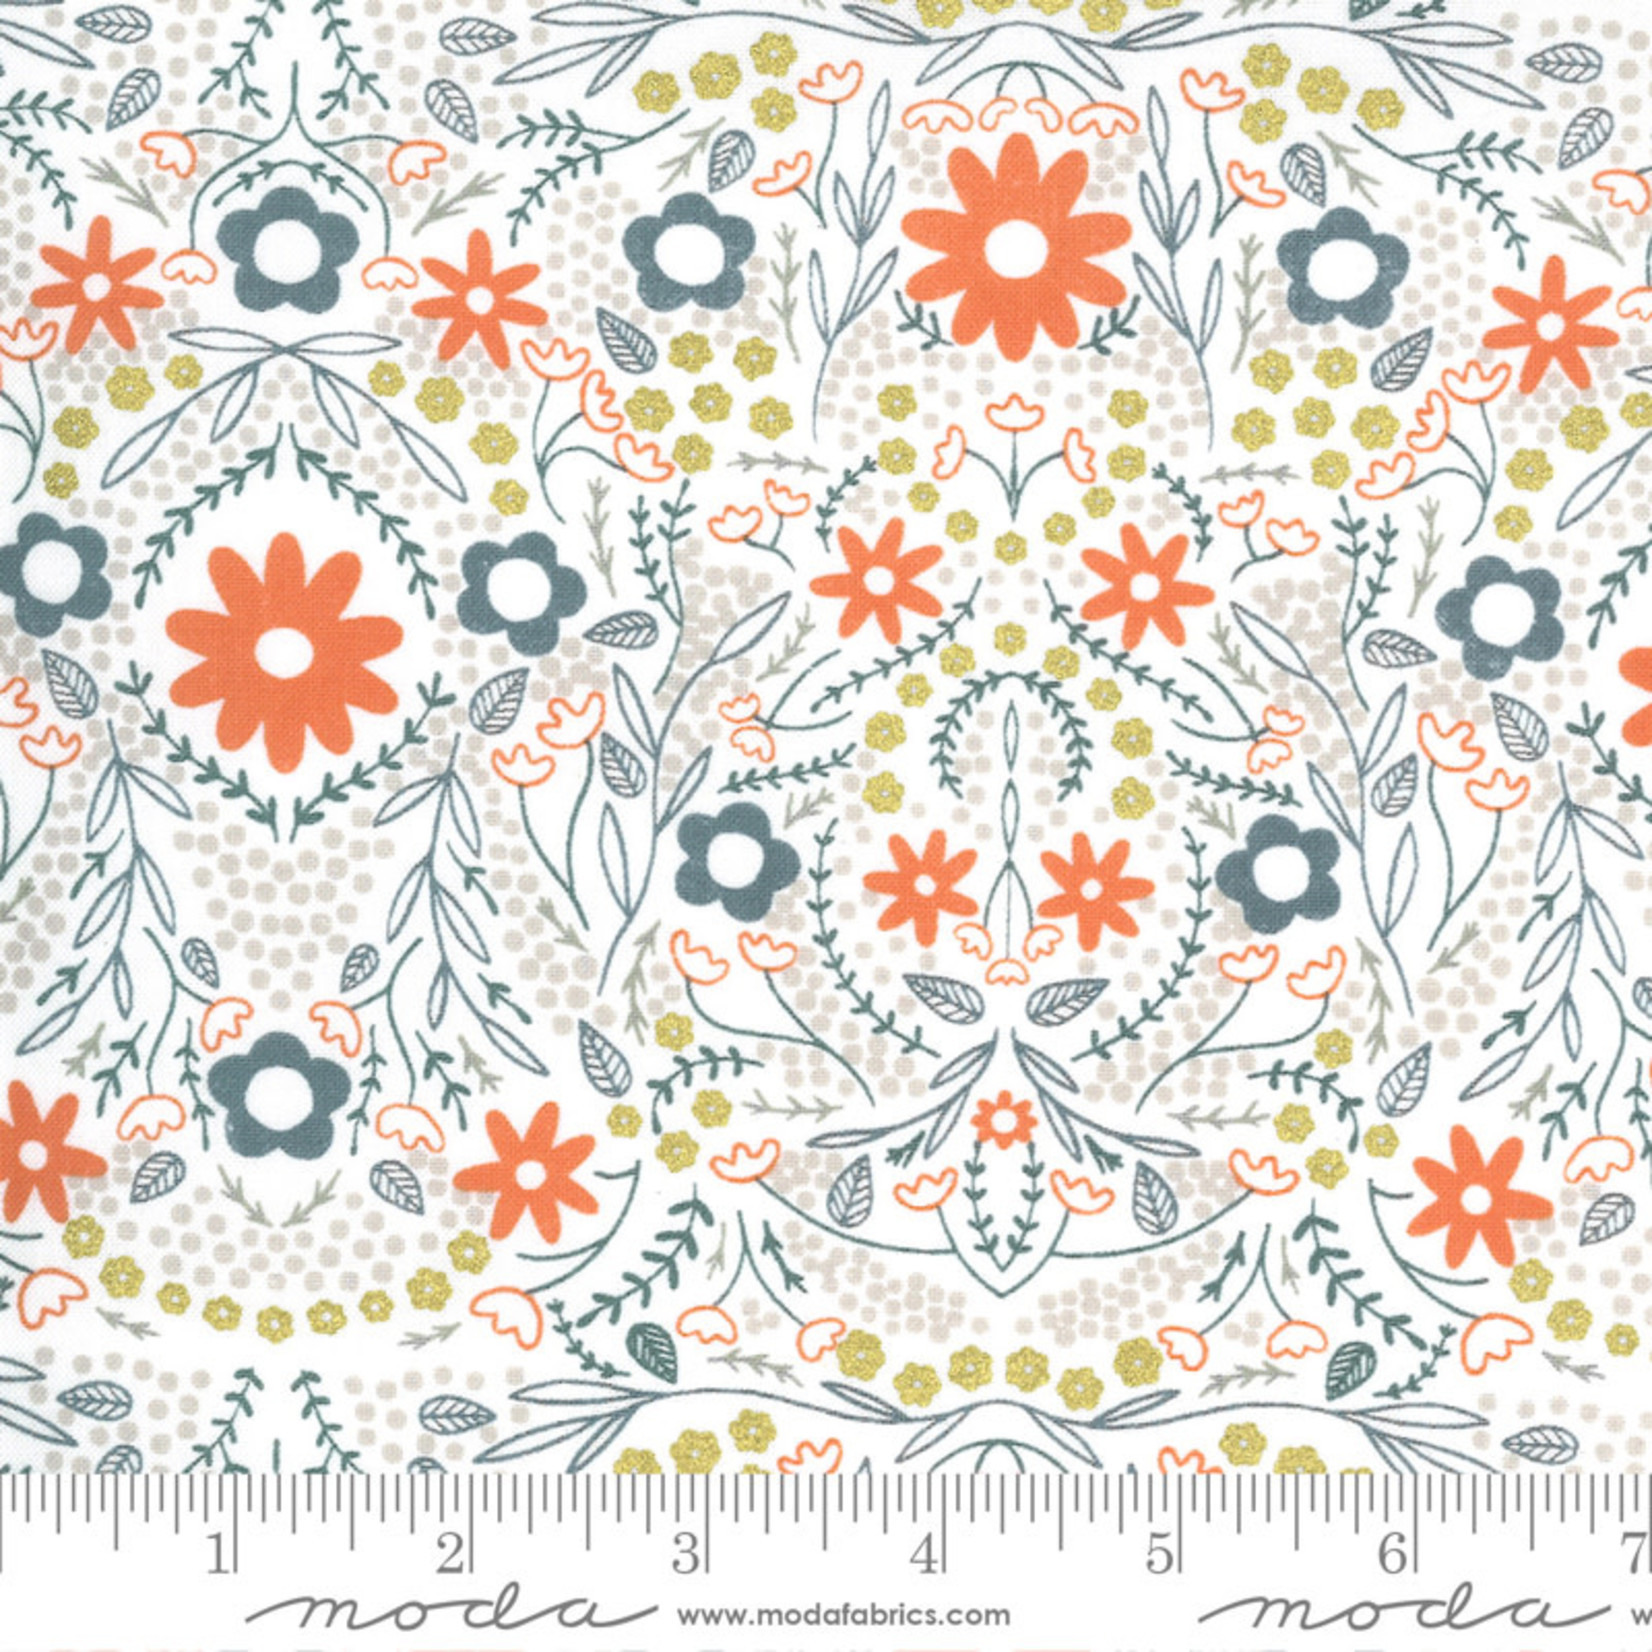 Gingiber Dwell In Possibility, Full Bloom, Ivory 48312 19M $0.21/cm or $21/m